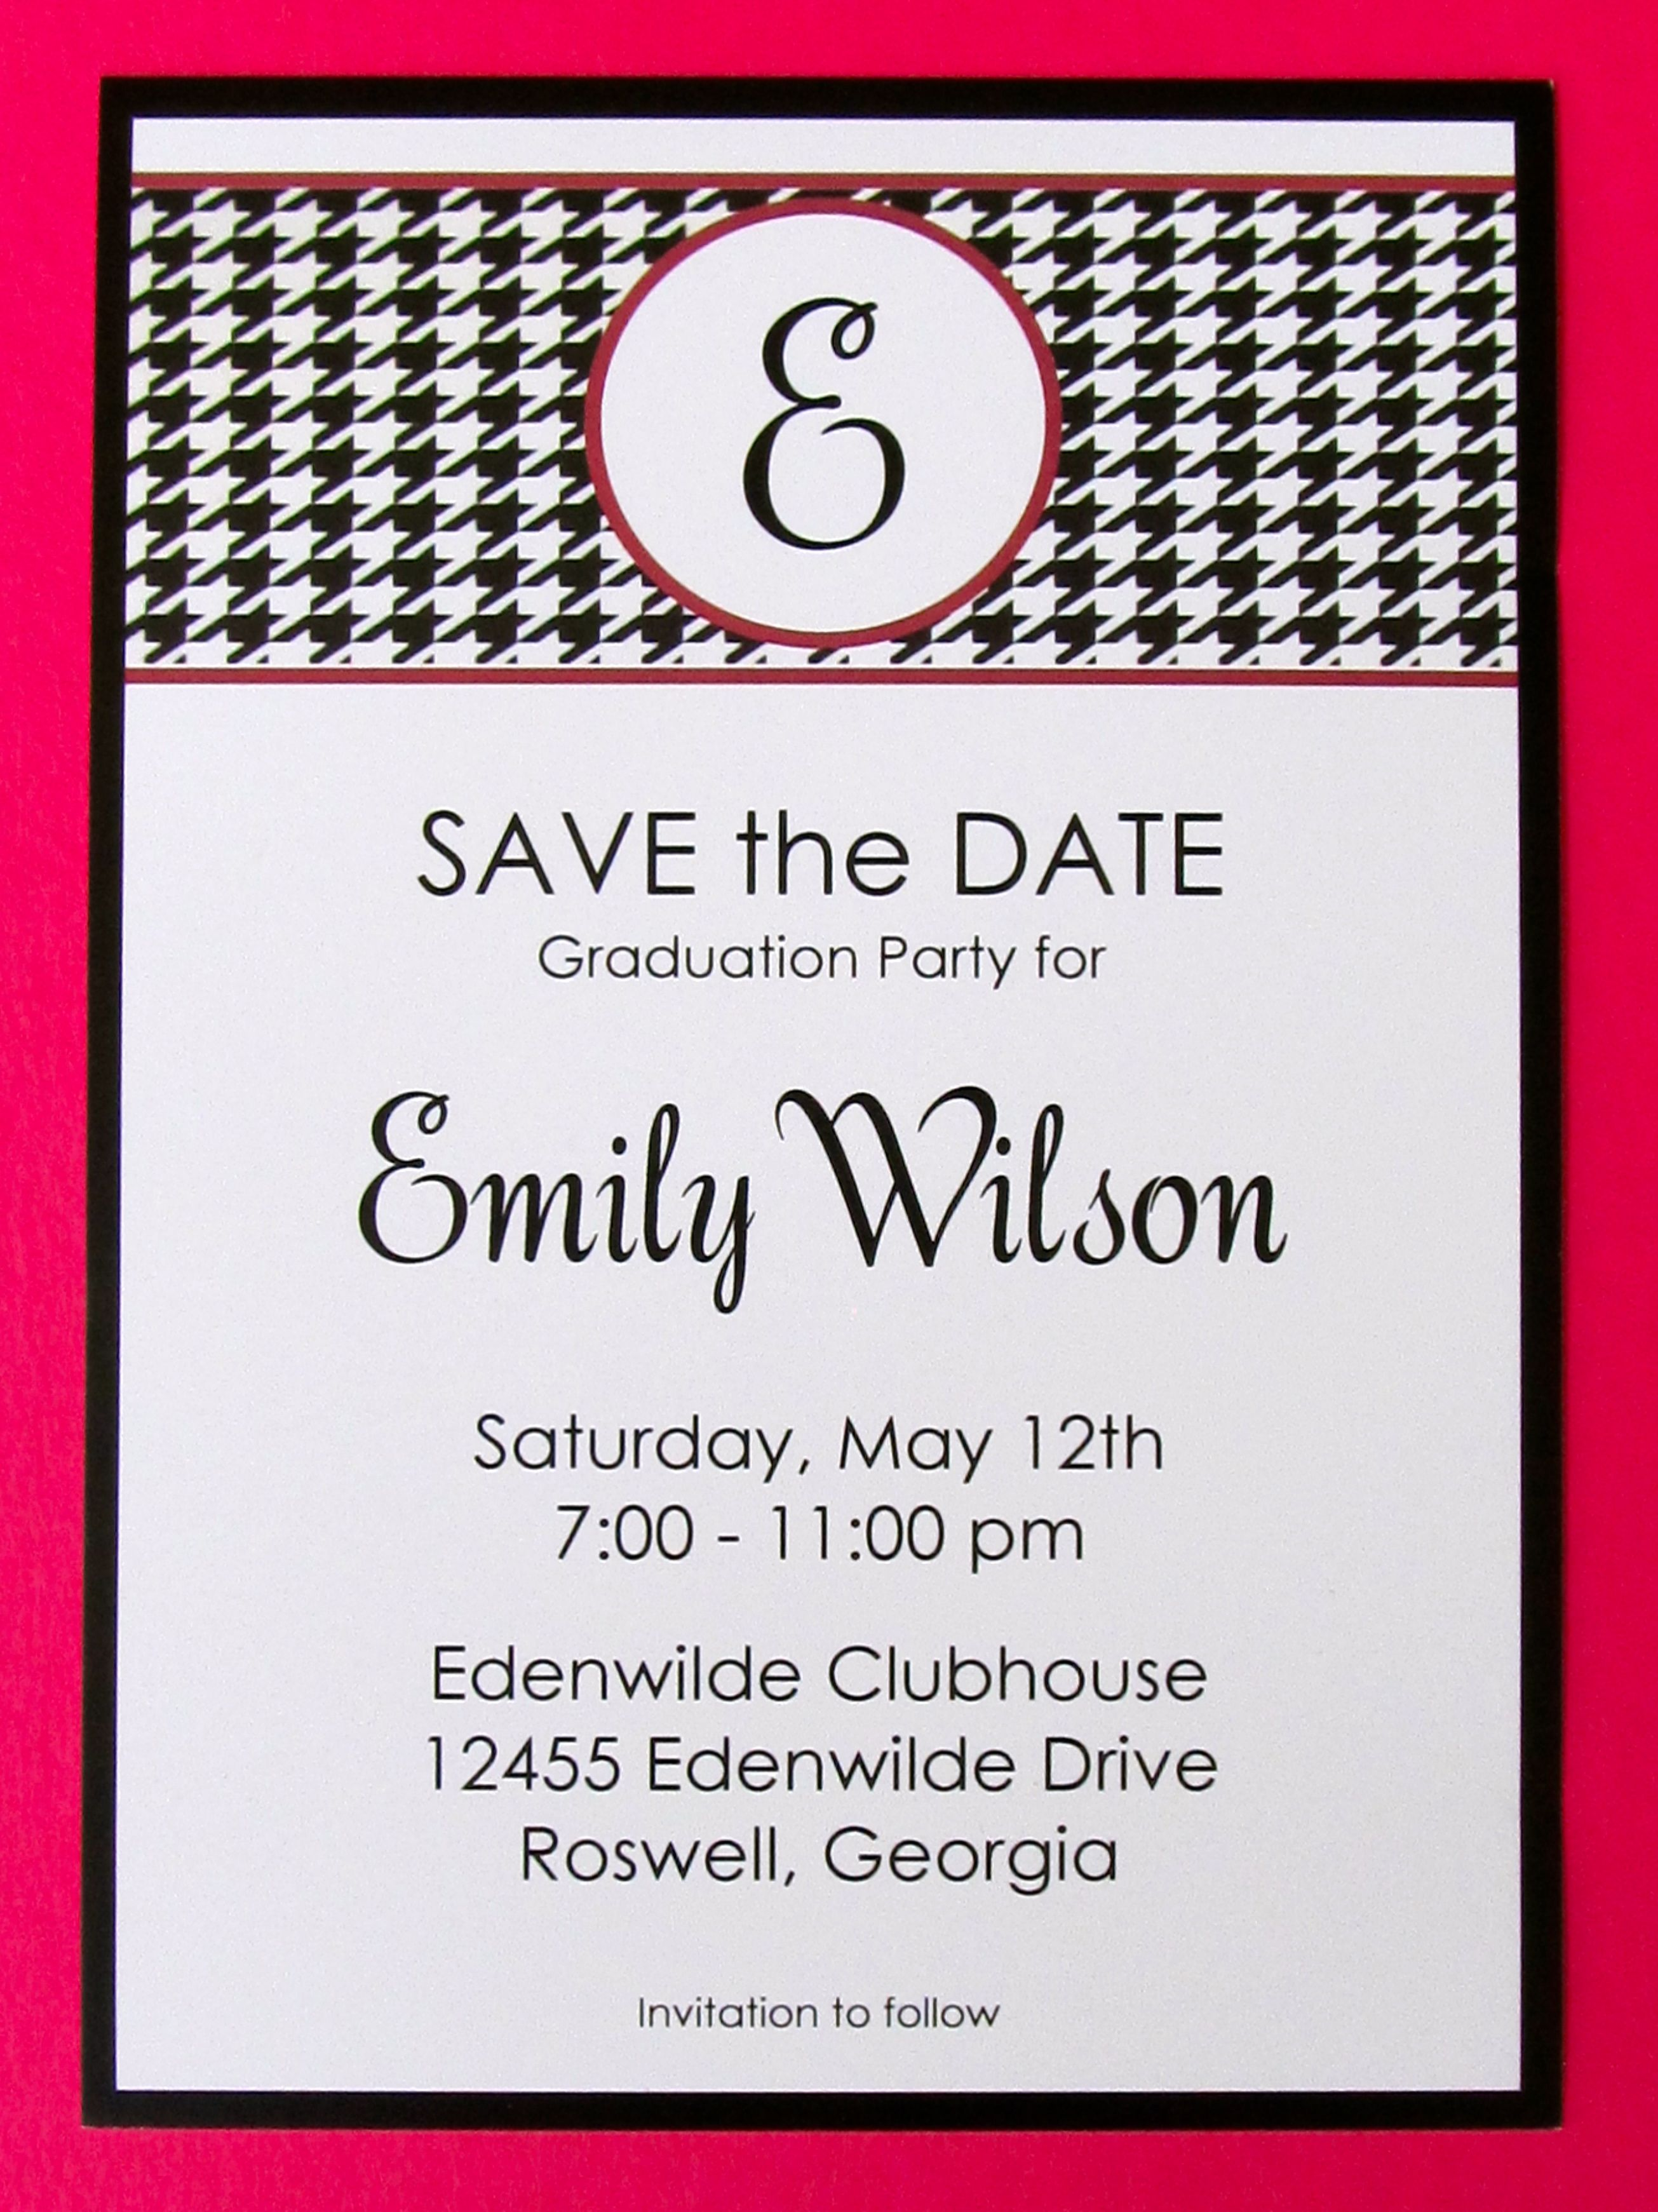 graduation party alabama theme save the dates pinterest